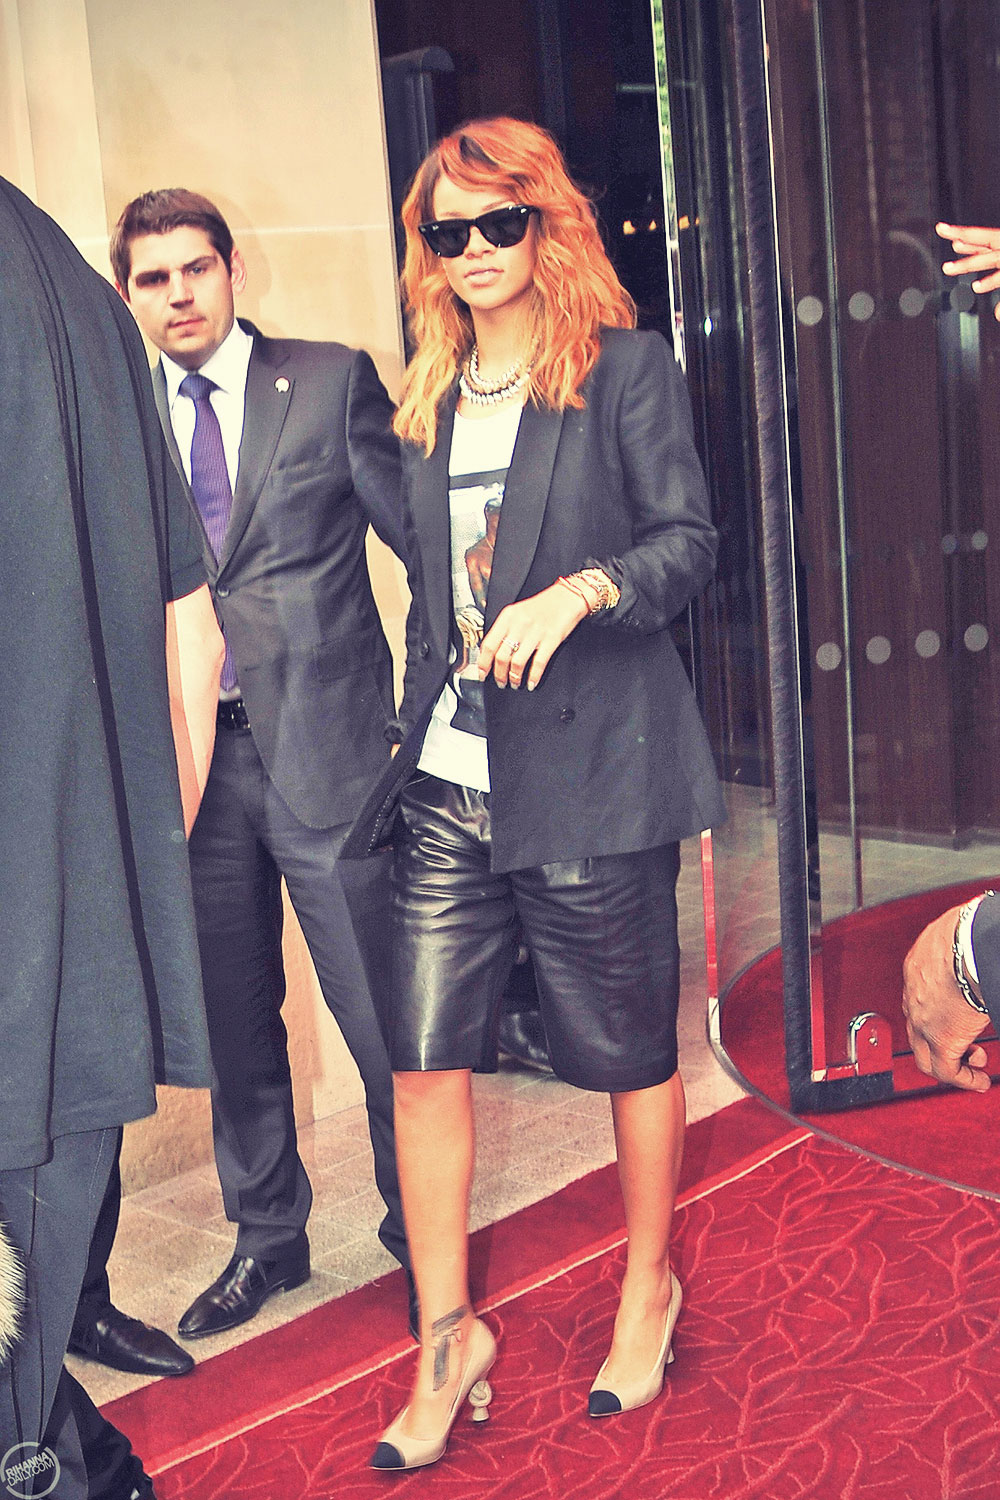 Rihanna at Laissant son hotel in Paris